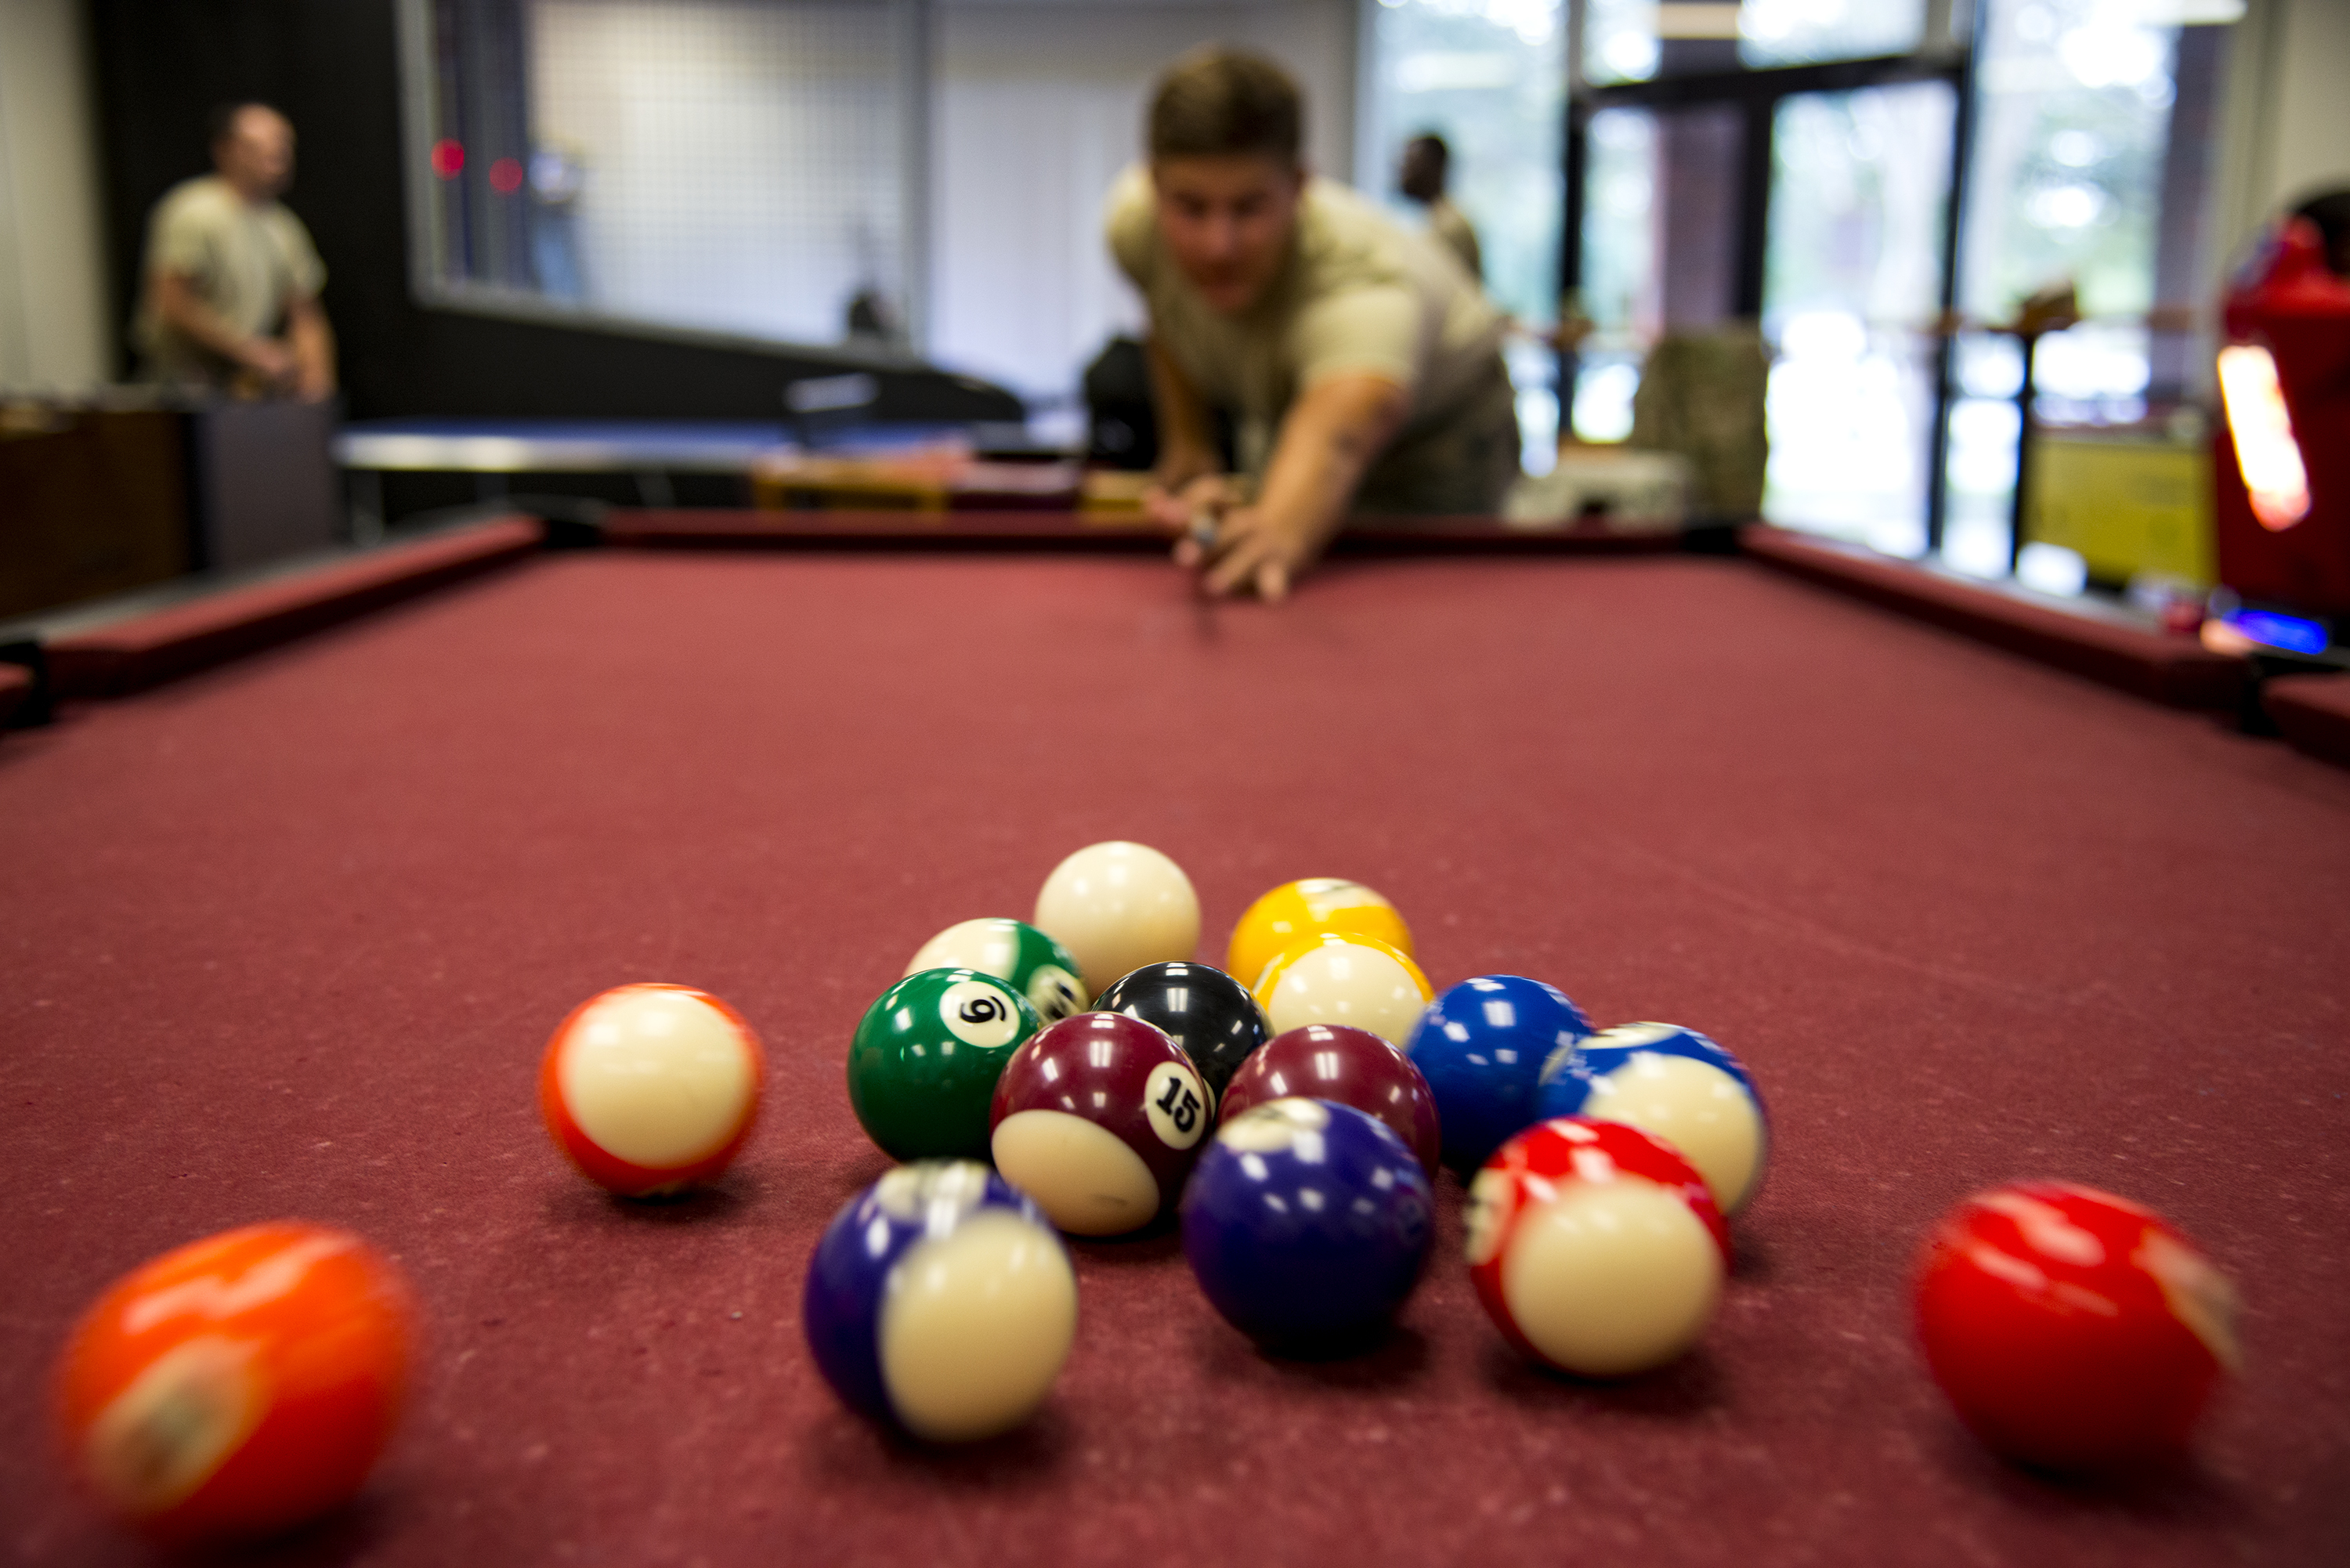 Pool, Activity, Balls, Billiard, Contest, HQ Photo